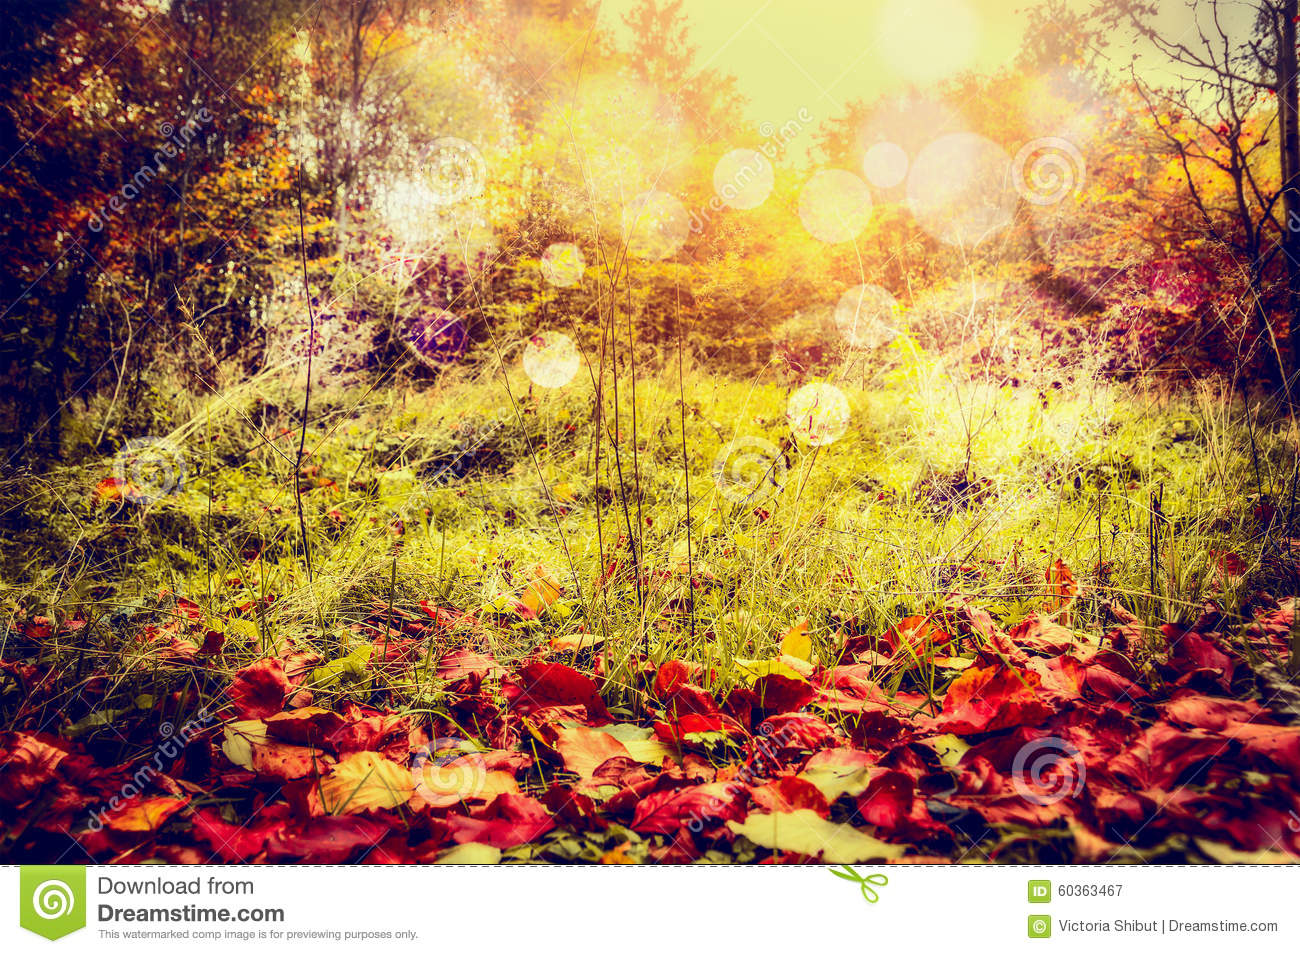 Autumn nature background with red fallen leaves, wild grass and trees bush with sun light and bokeh